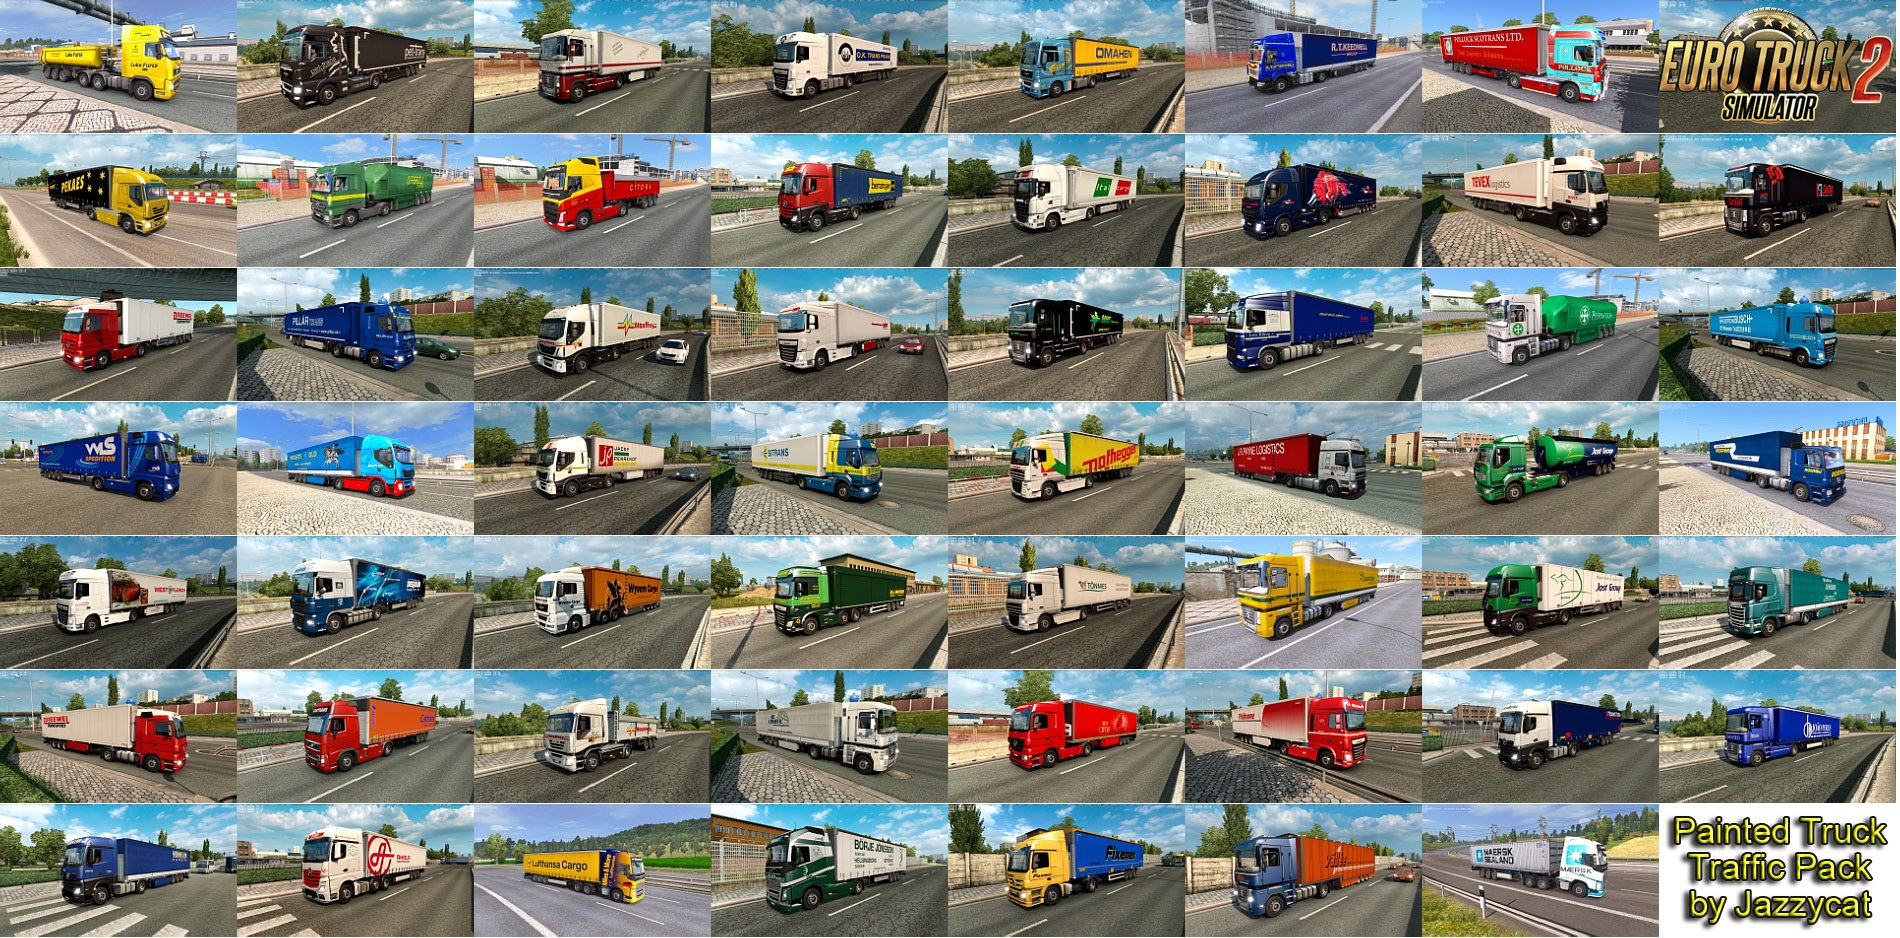 Painted Truck Traffic Pack v4.6 by Jazzycat (1.28.x)